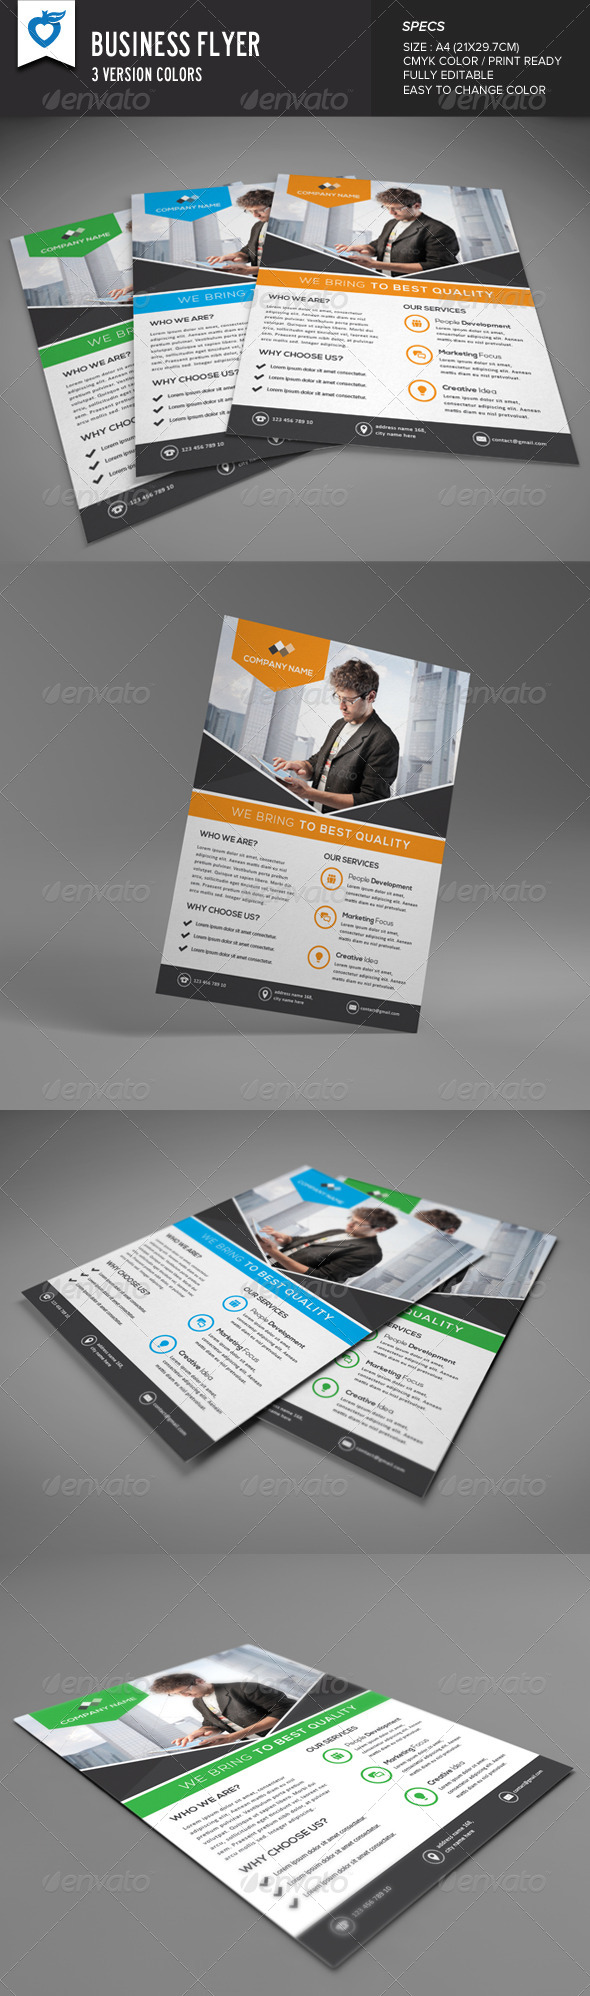 Business Flyer Multipurpose